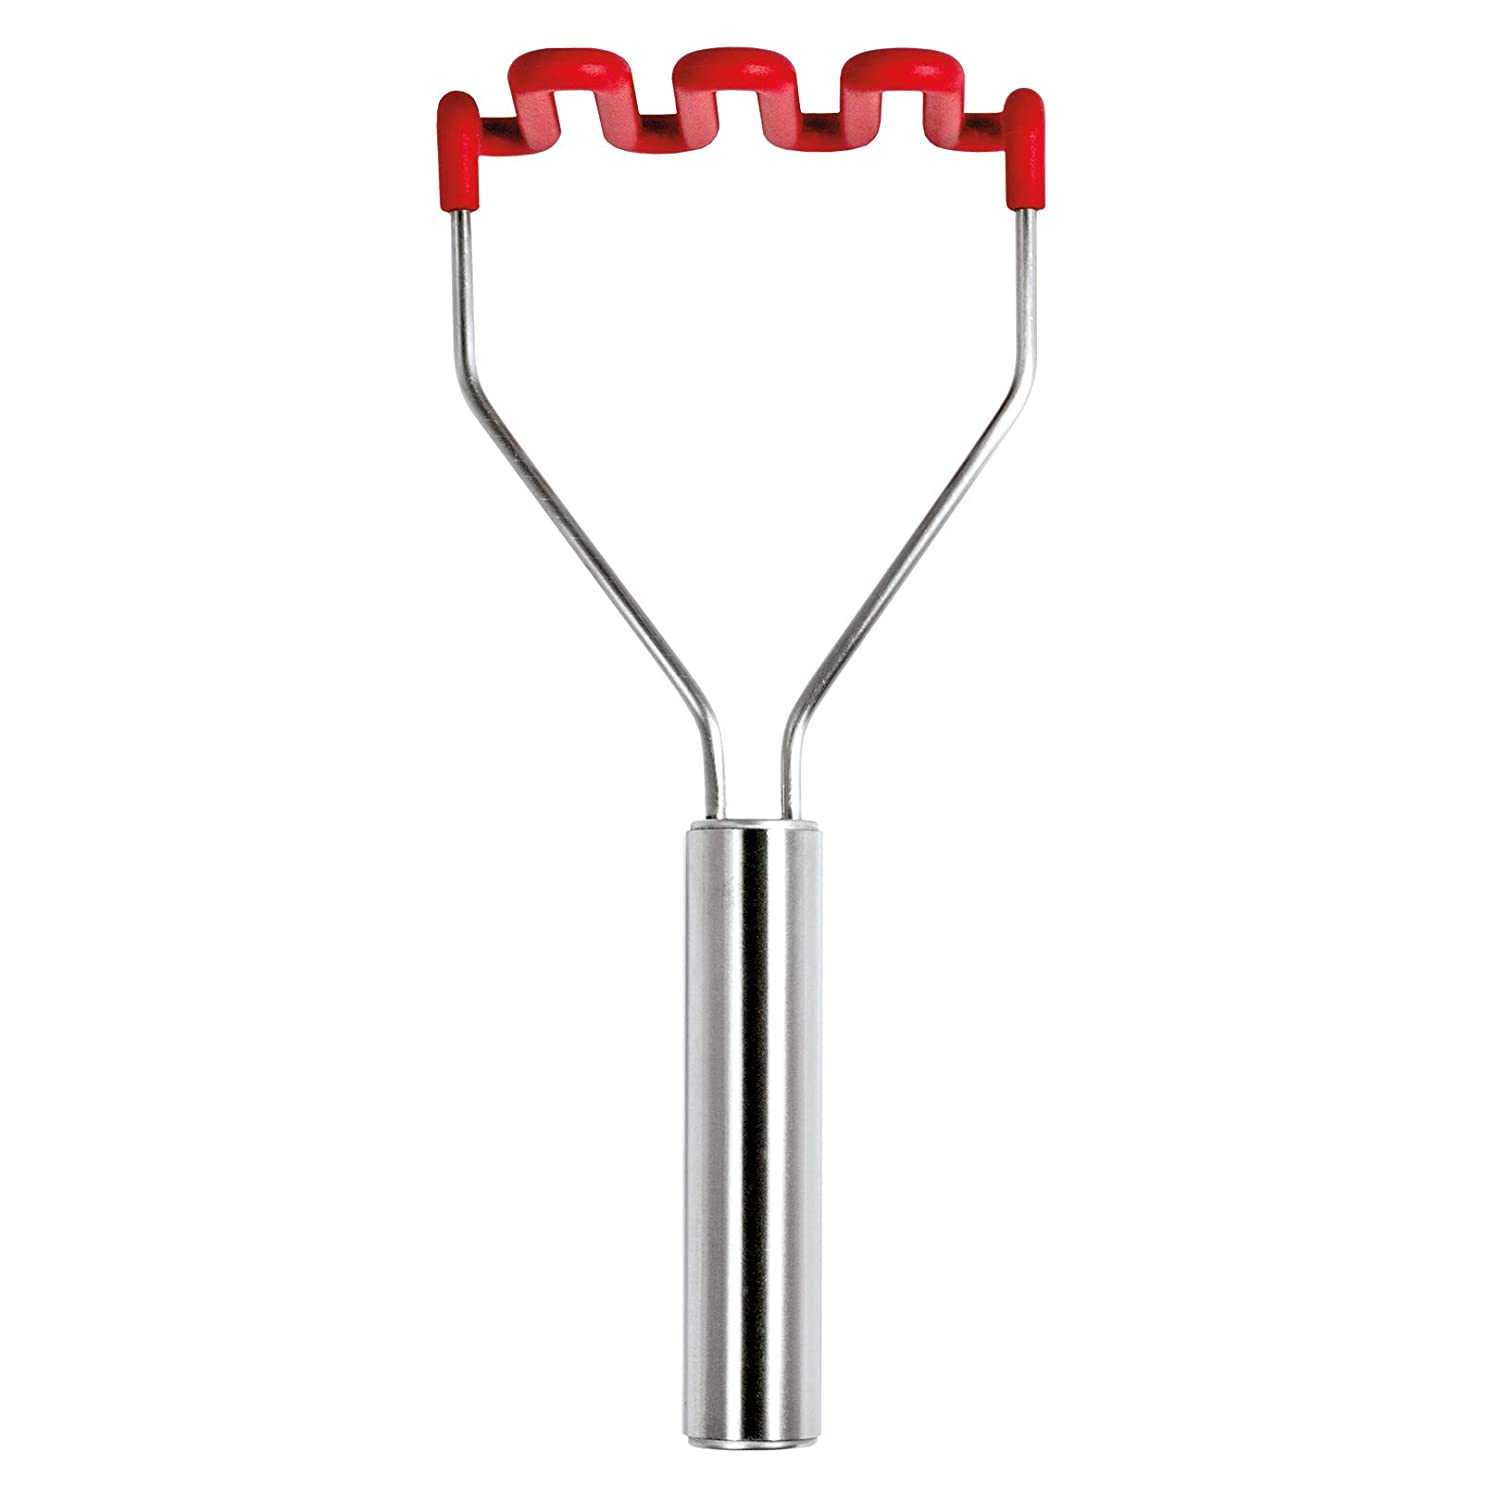 Tovolo Silicone Potato Masher - Candy Apple